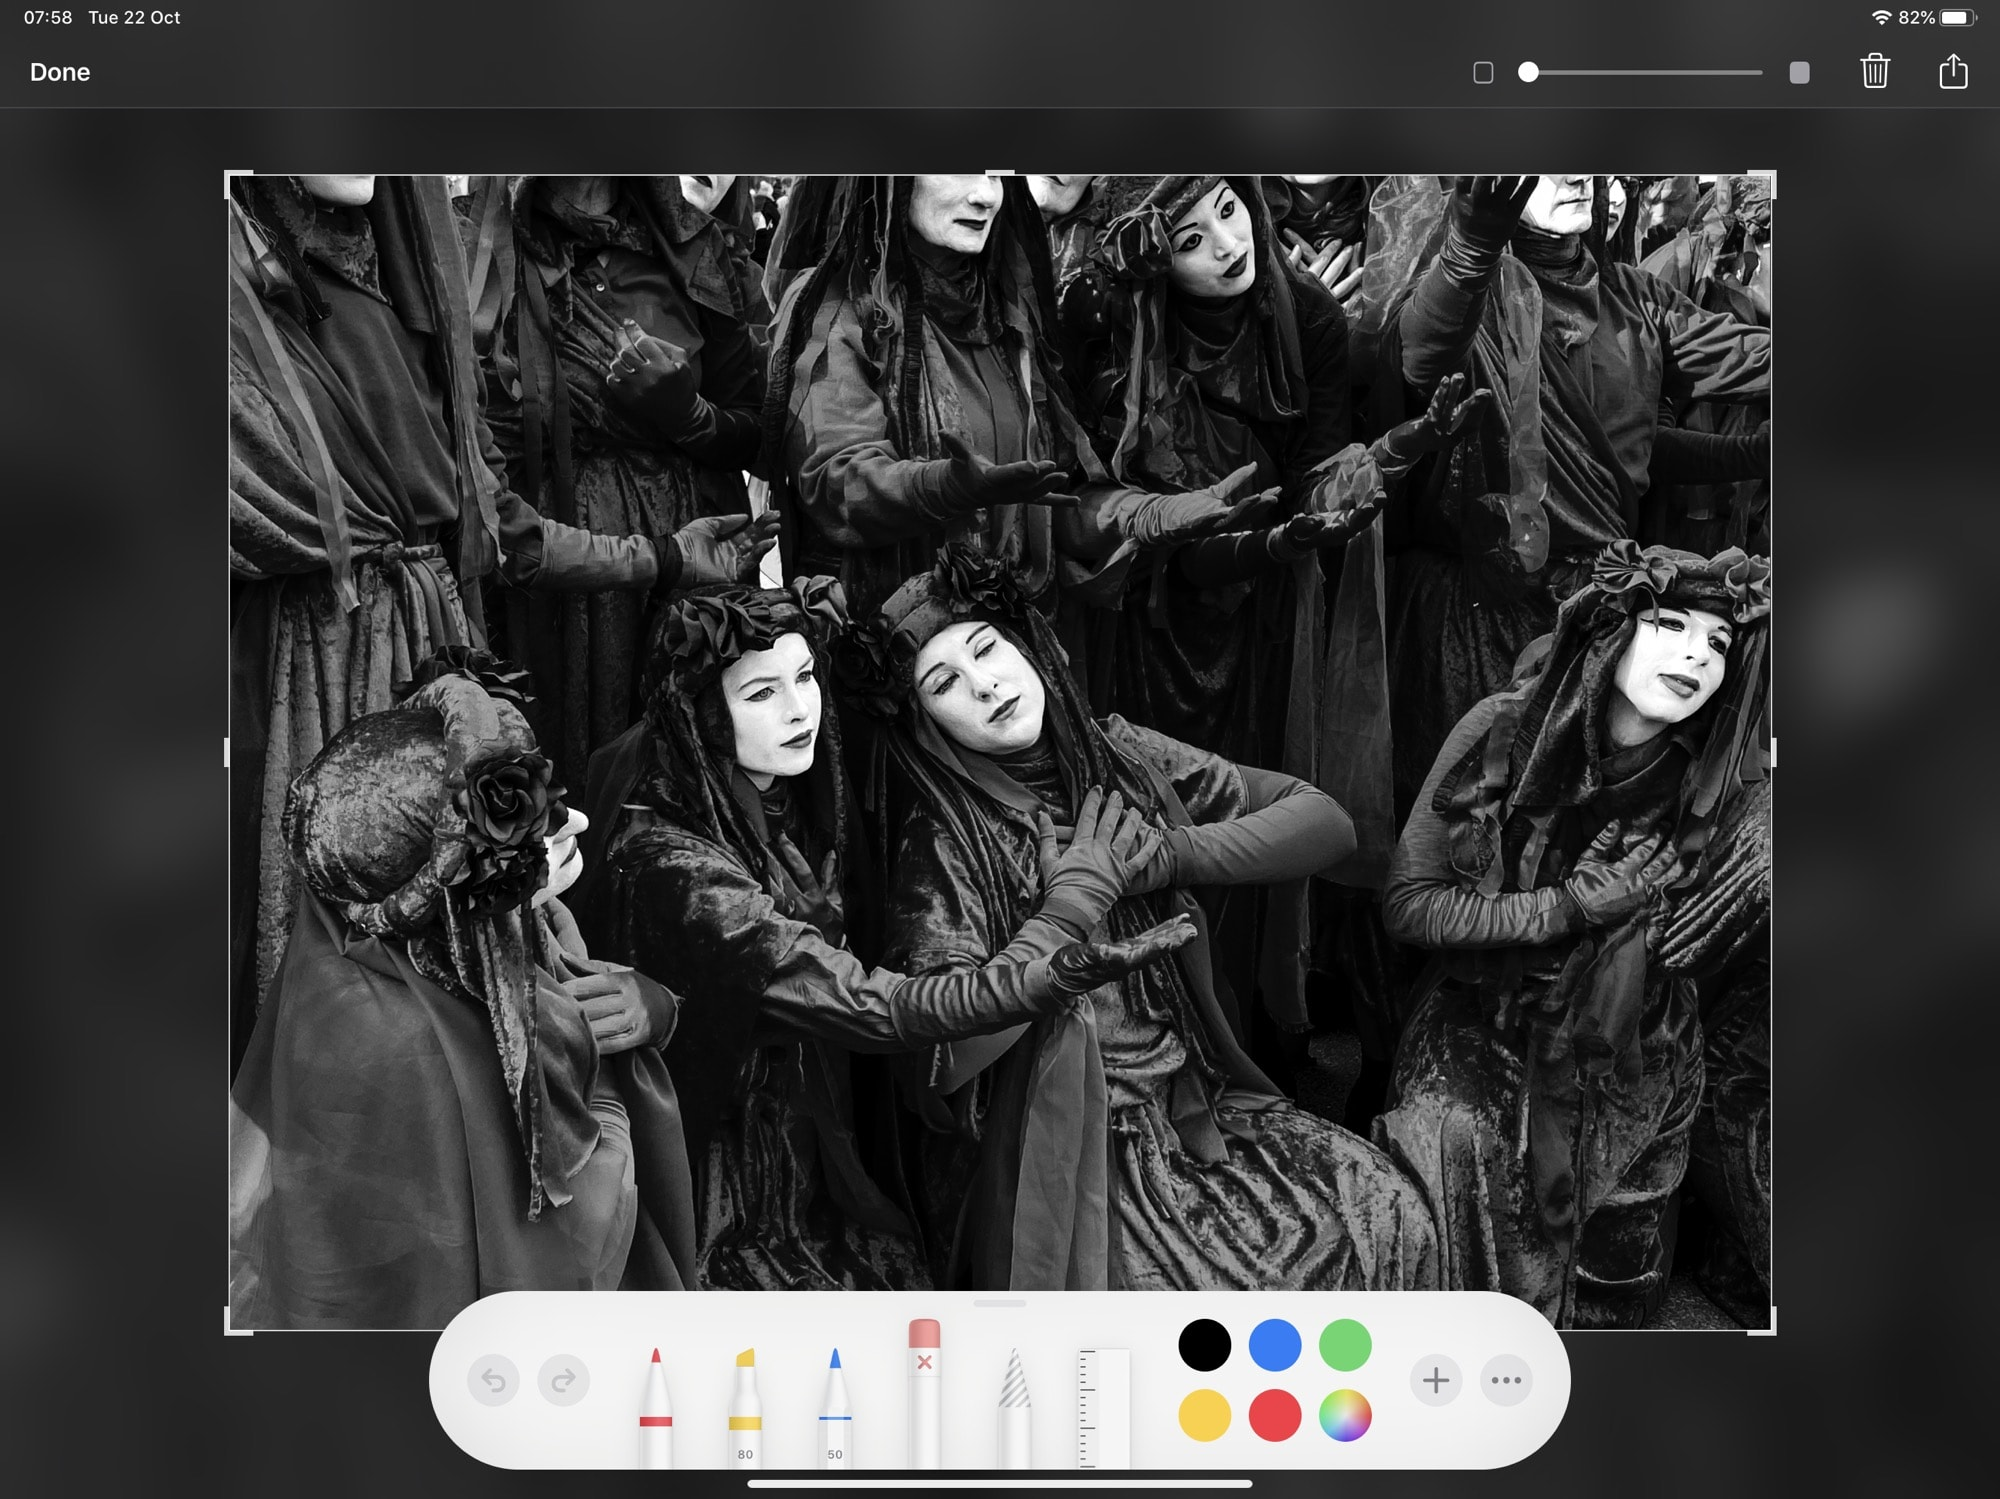 The new Instant Markup tool panel in iPadOS.